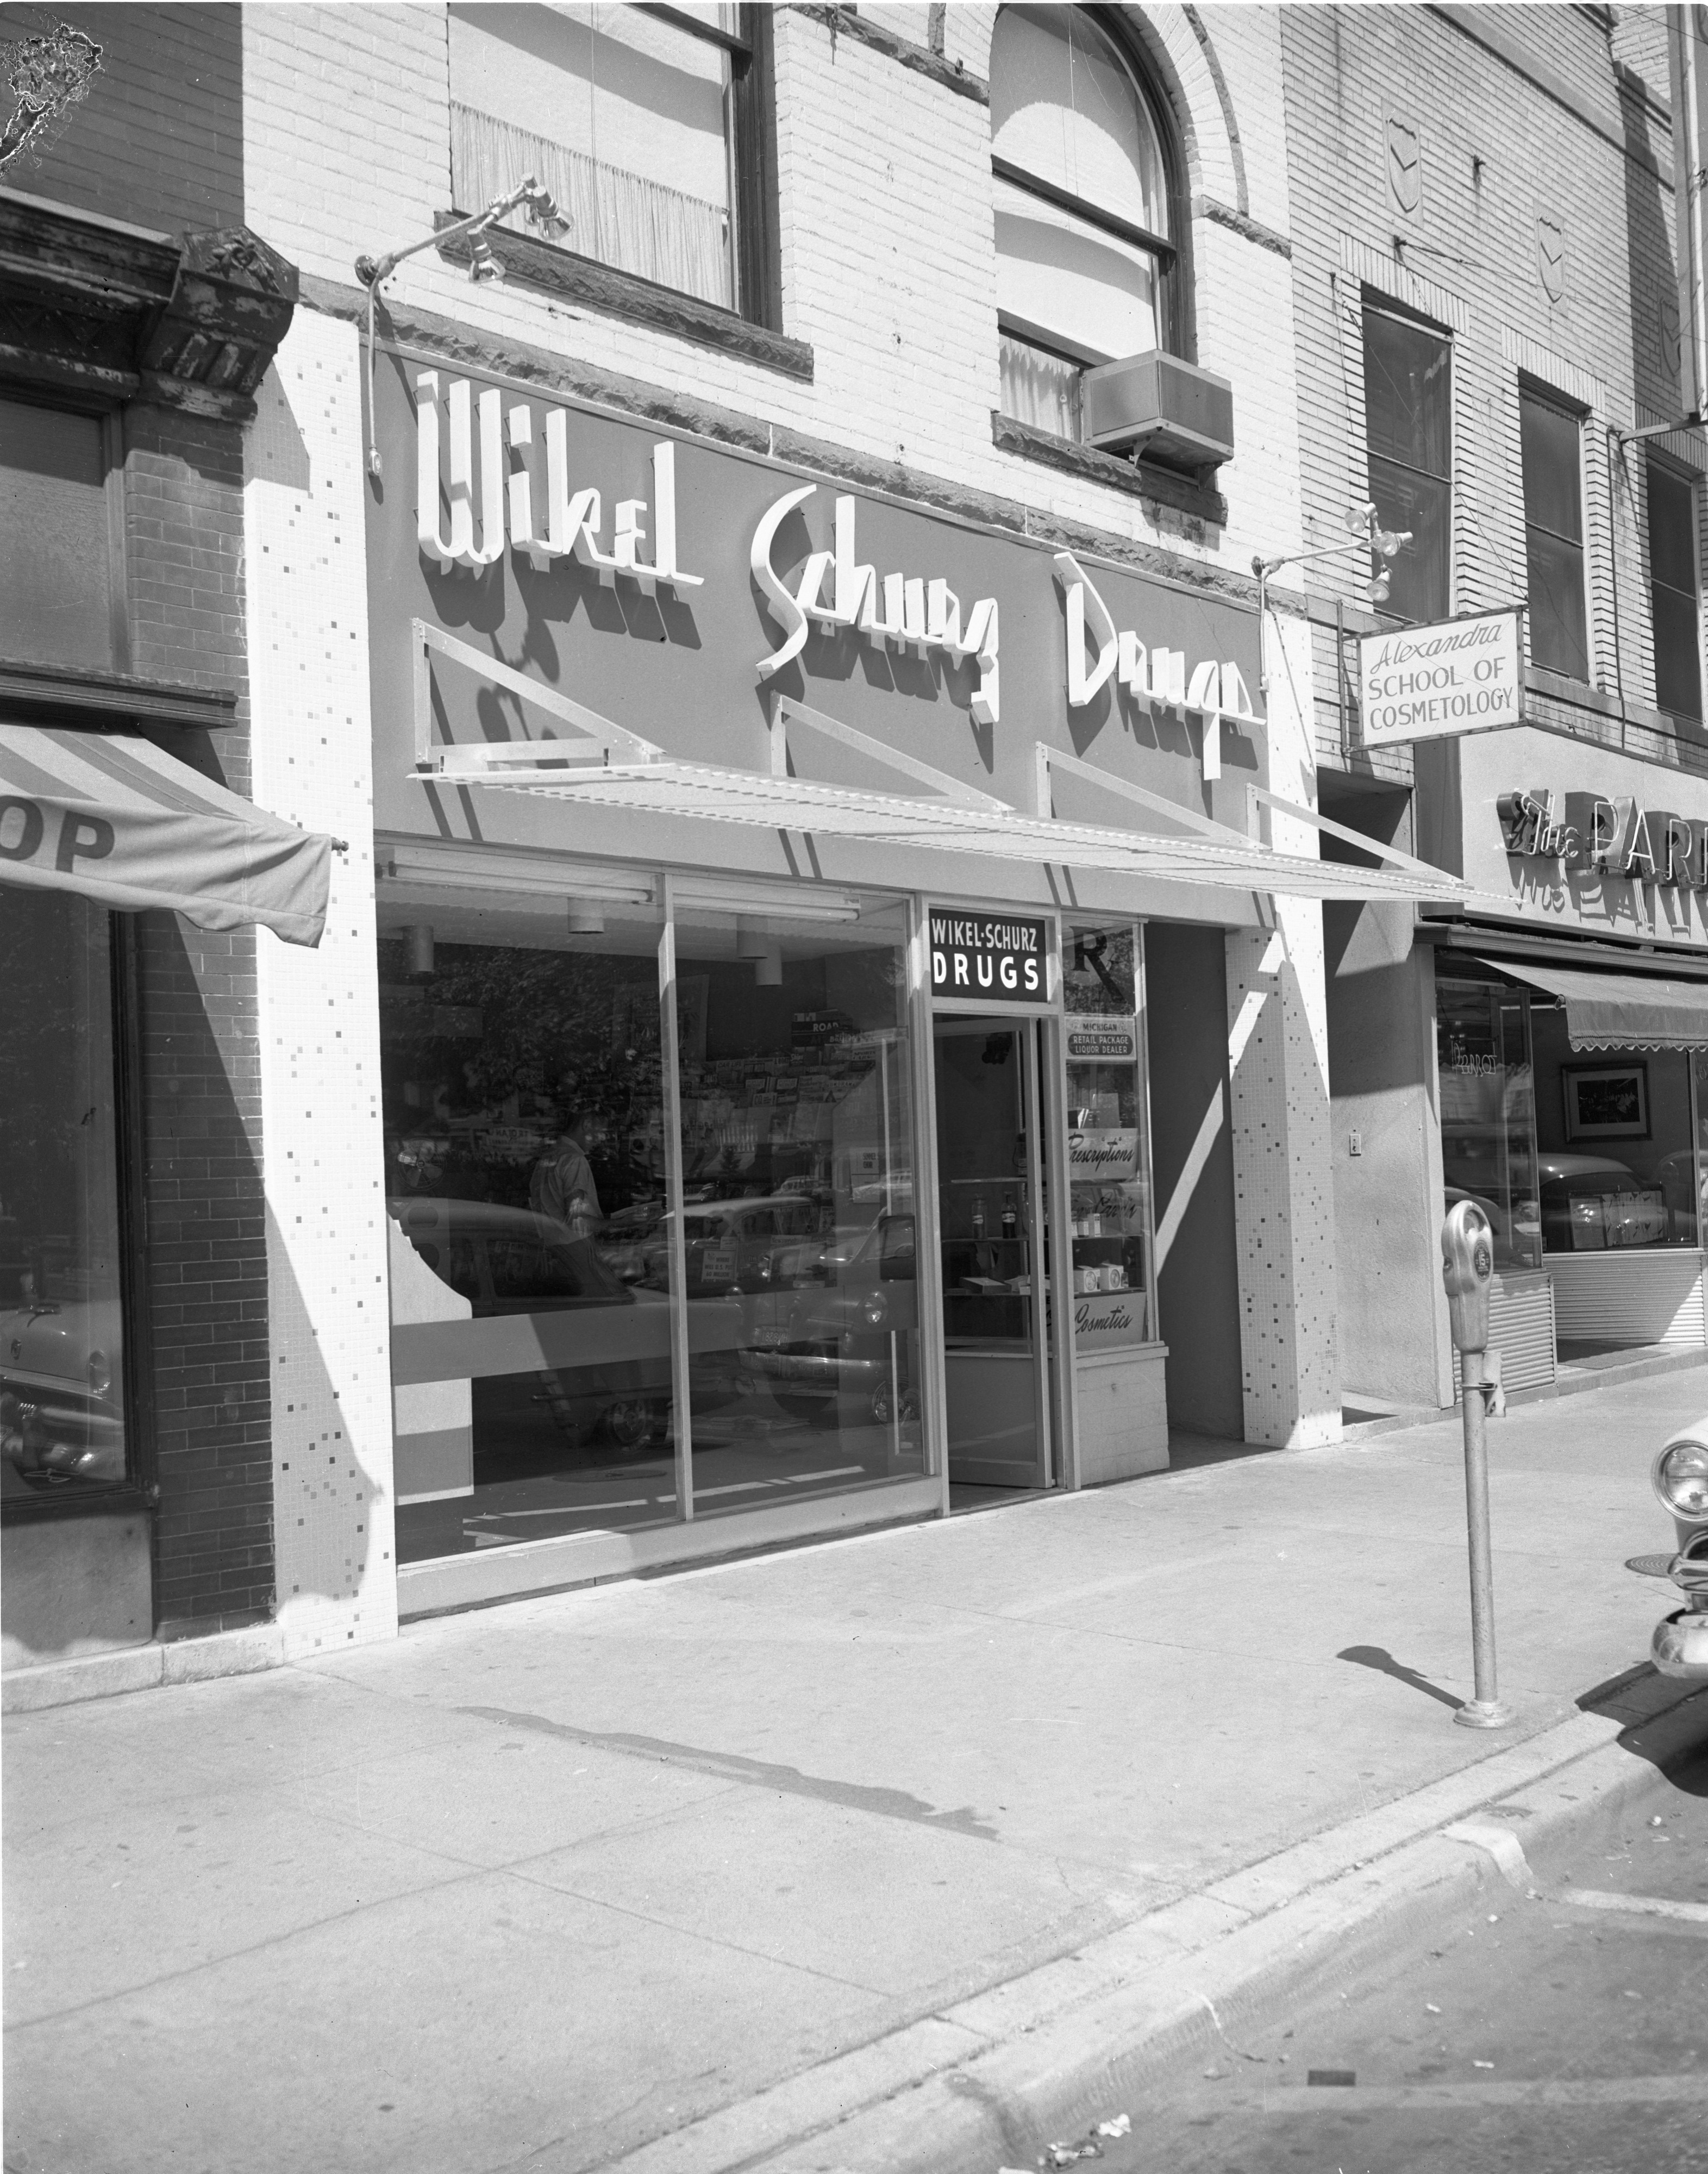 Exterior Of The New Wikel-Schurz Drugstore, August 1957 image